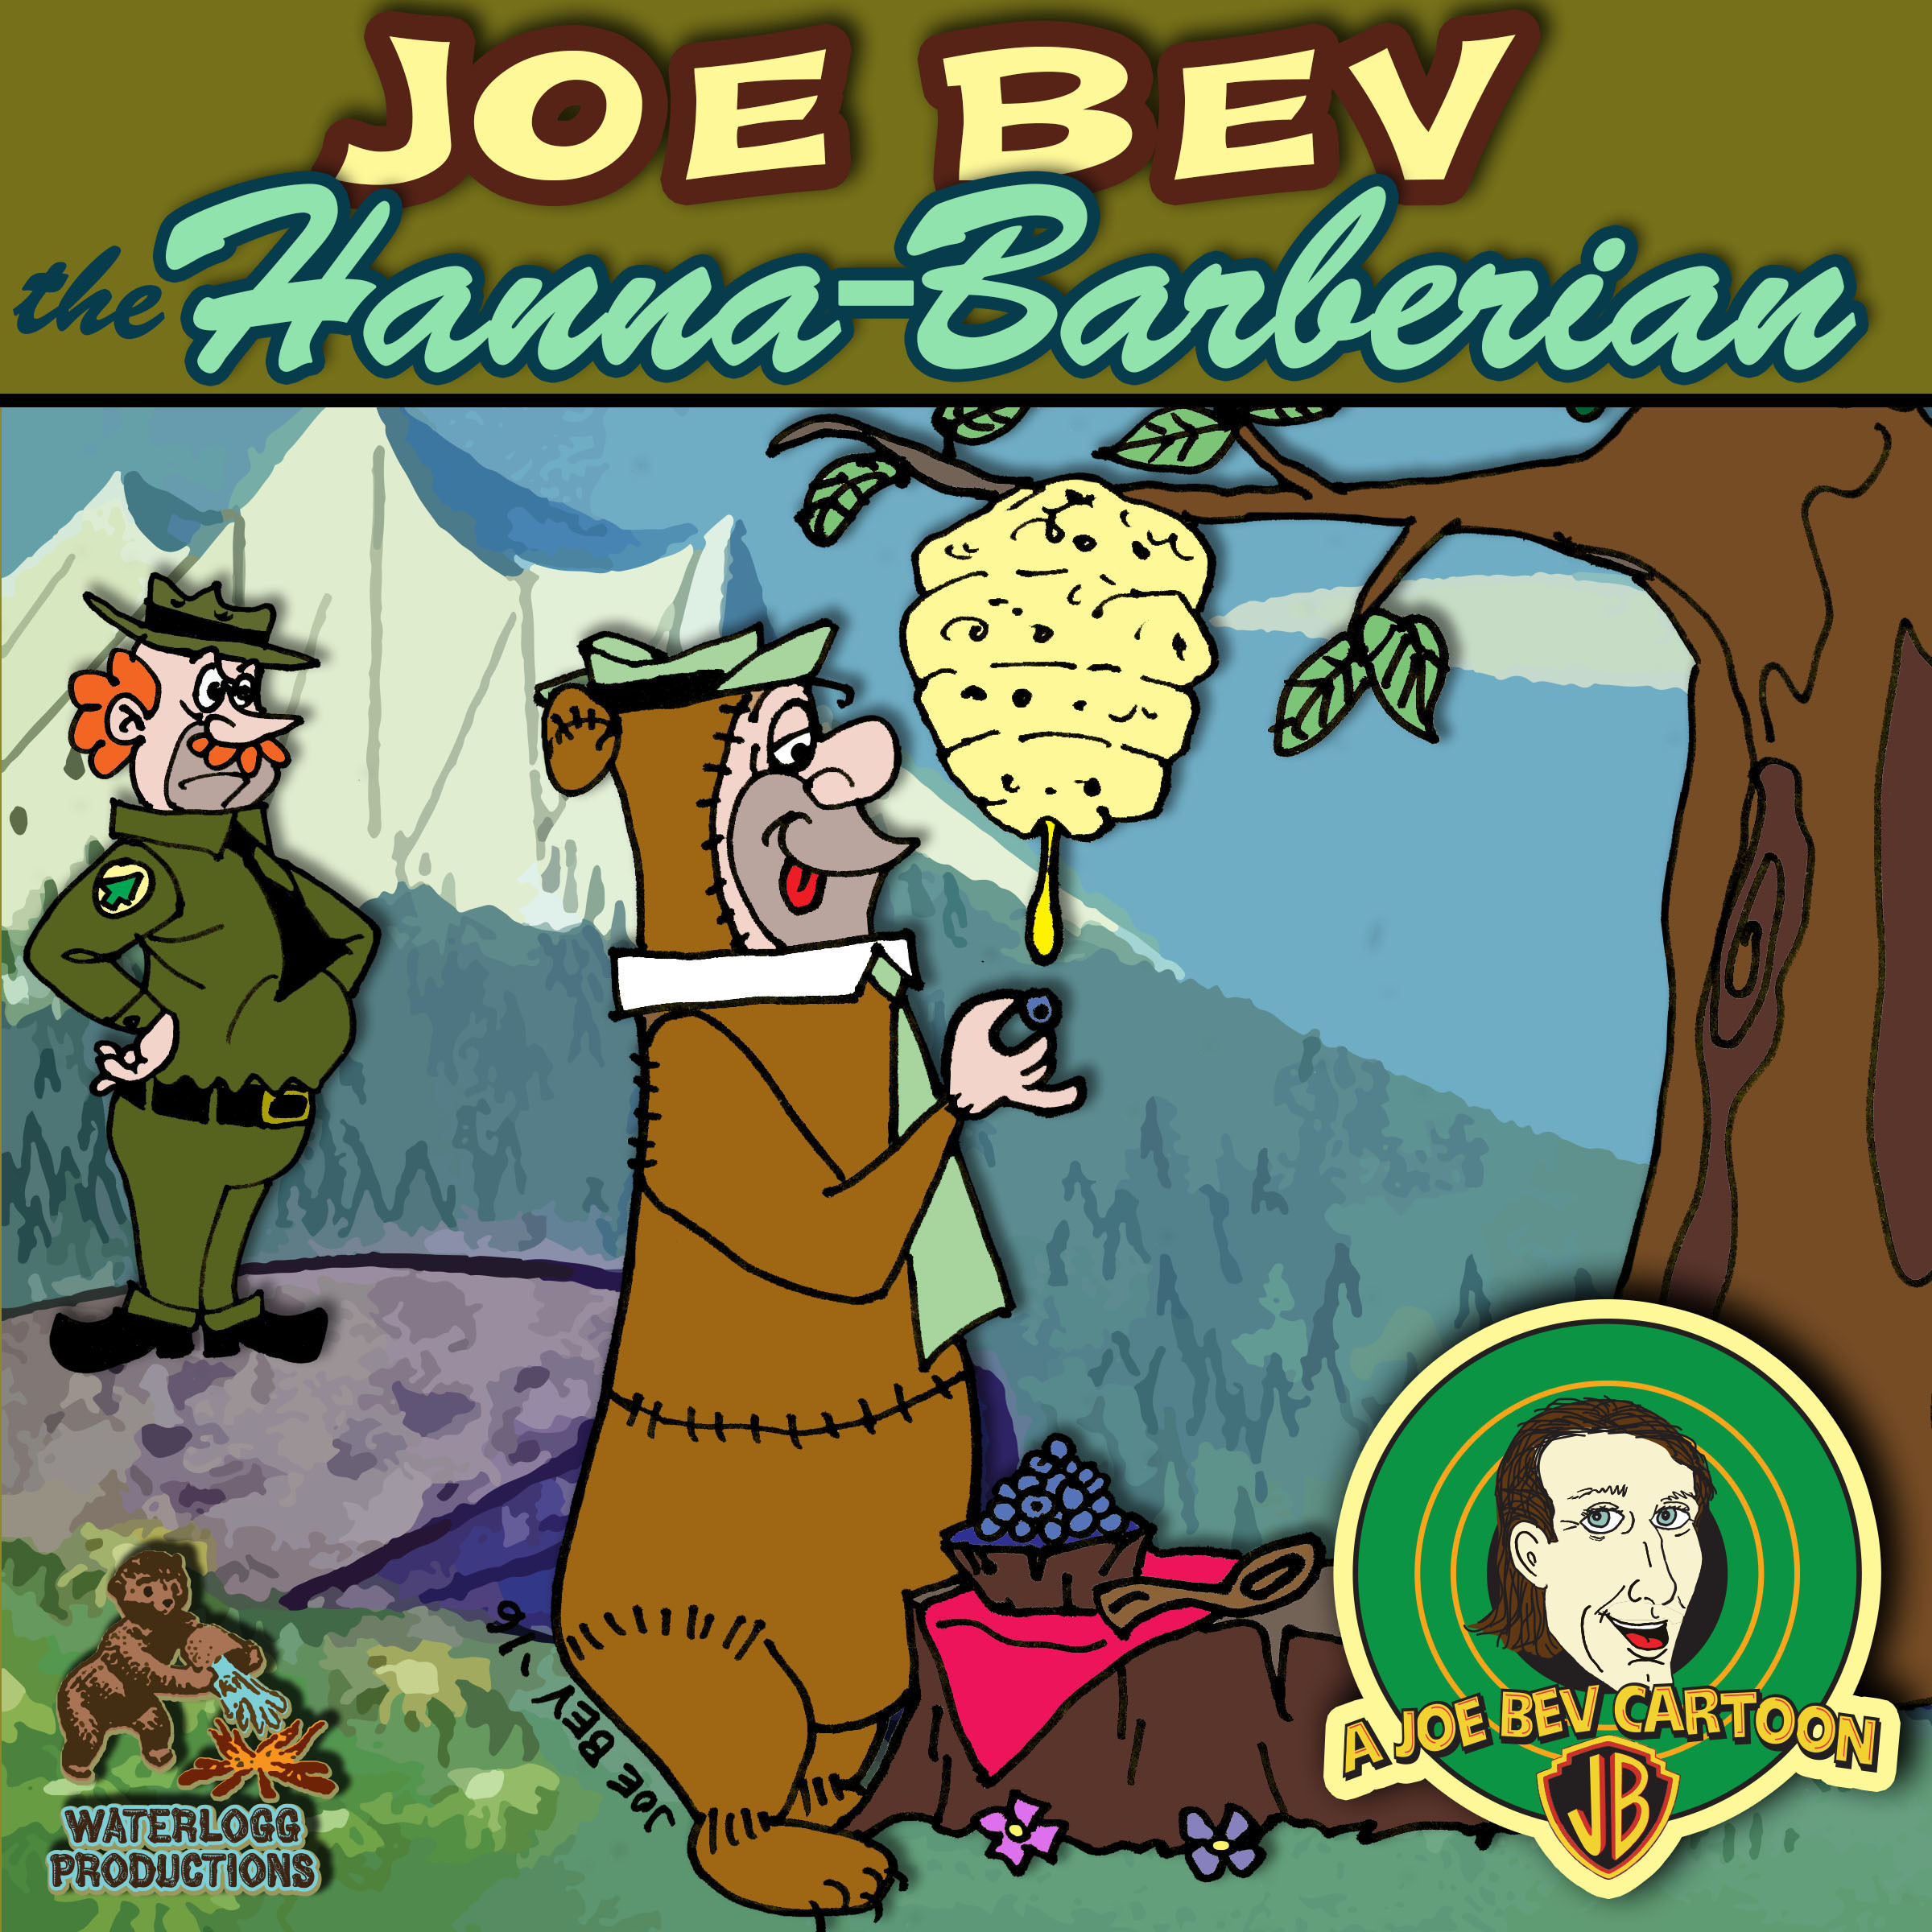 Printable Joe Bev Hanna-Barberian: A Joe Bev Cartoon, Volume 9 Audiobook Cover Art